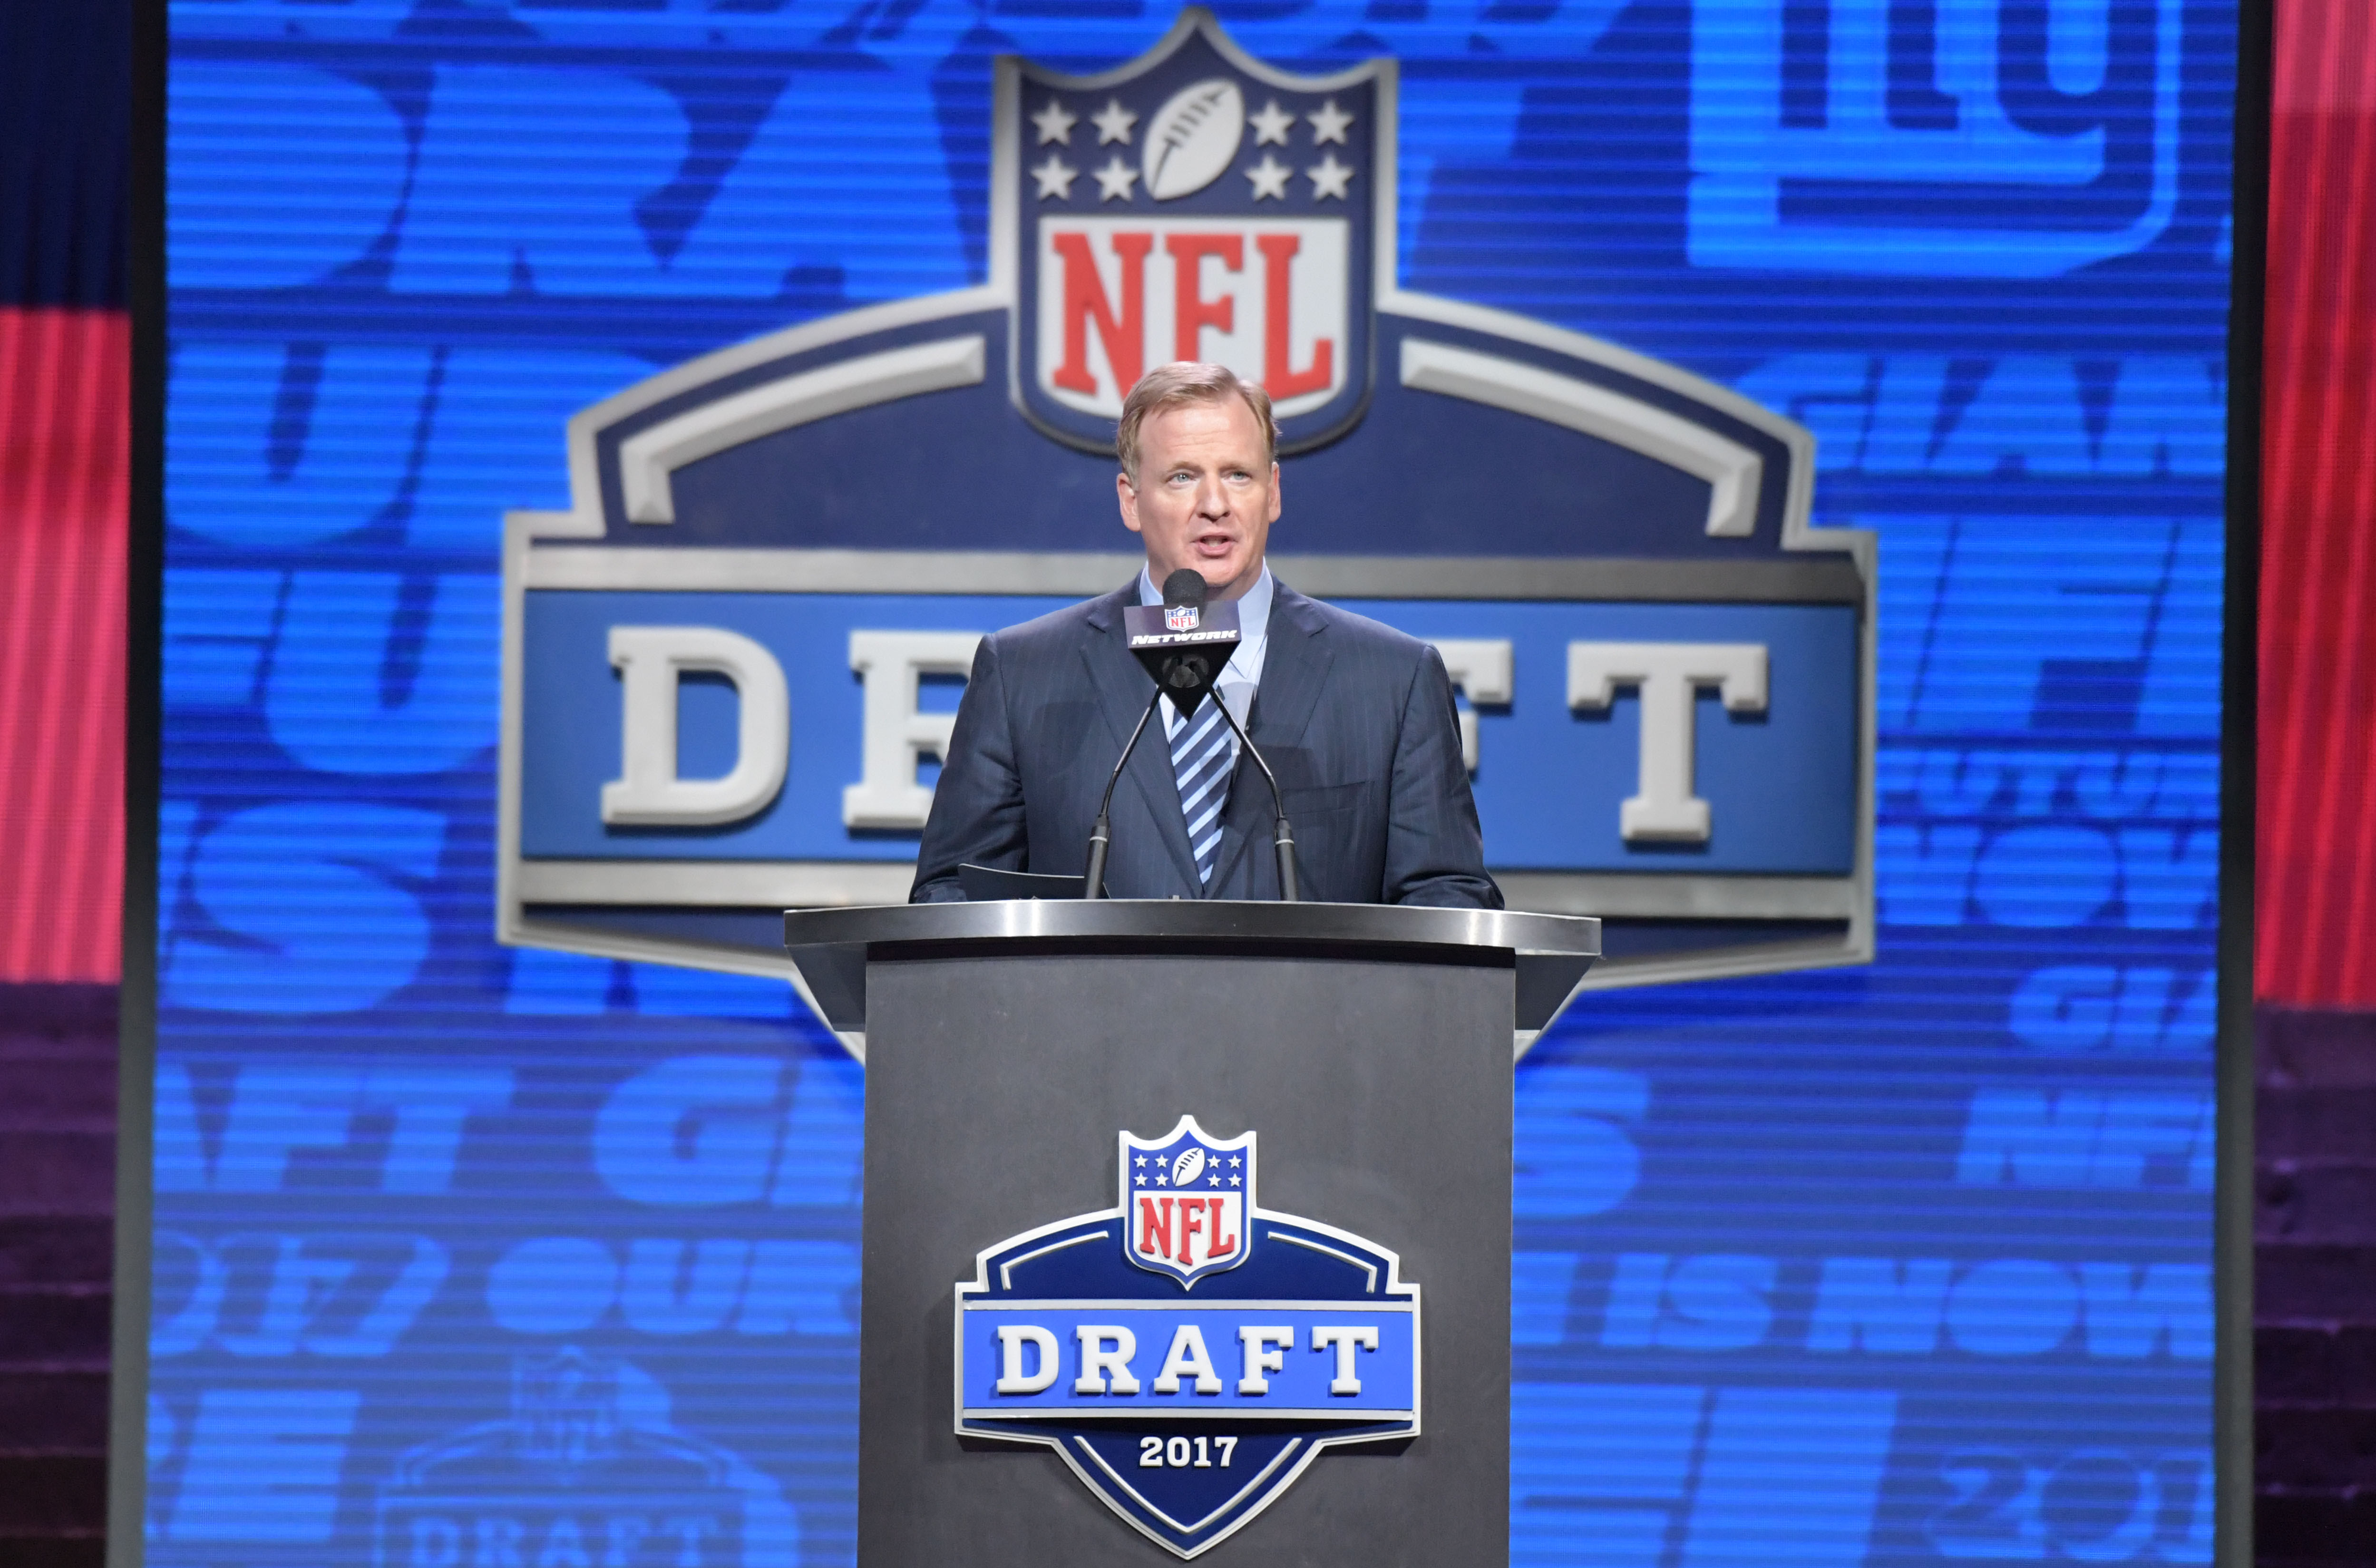 Apr 27, 2017; Philadelphia, PA, USA; NFL commissioner Roger Goodell during the first round the 2017 NFL Draft at the Philadelphia Museum of Art. Mandatory Credit: Kirby Lee-USA TODAY Sports